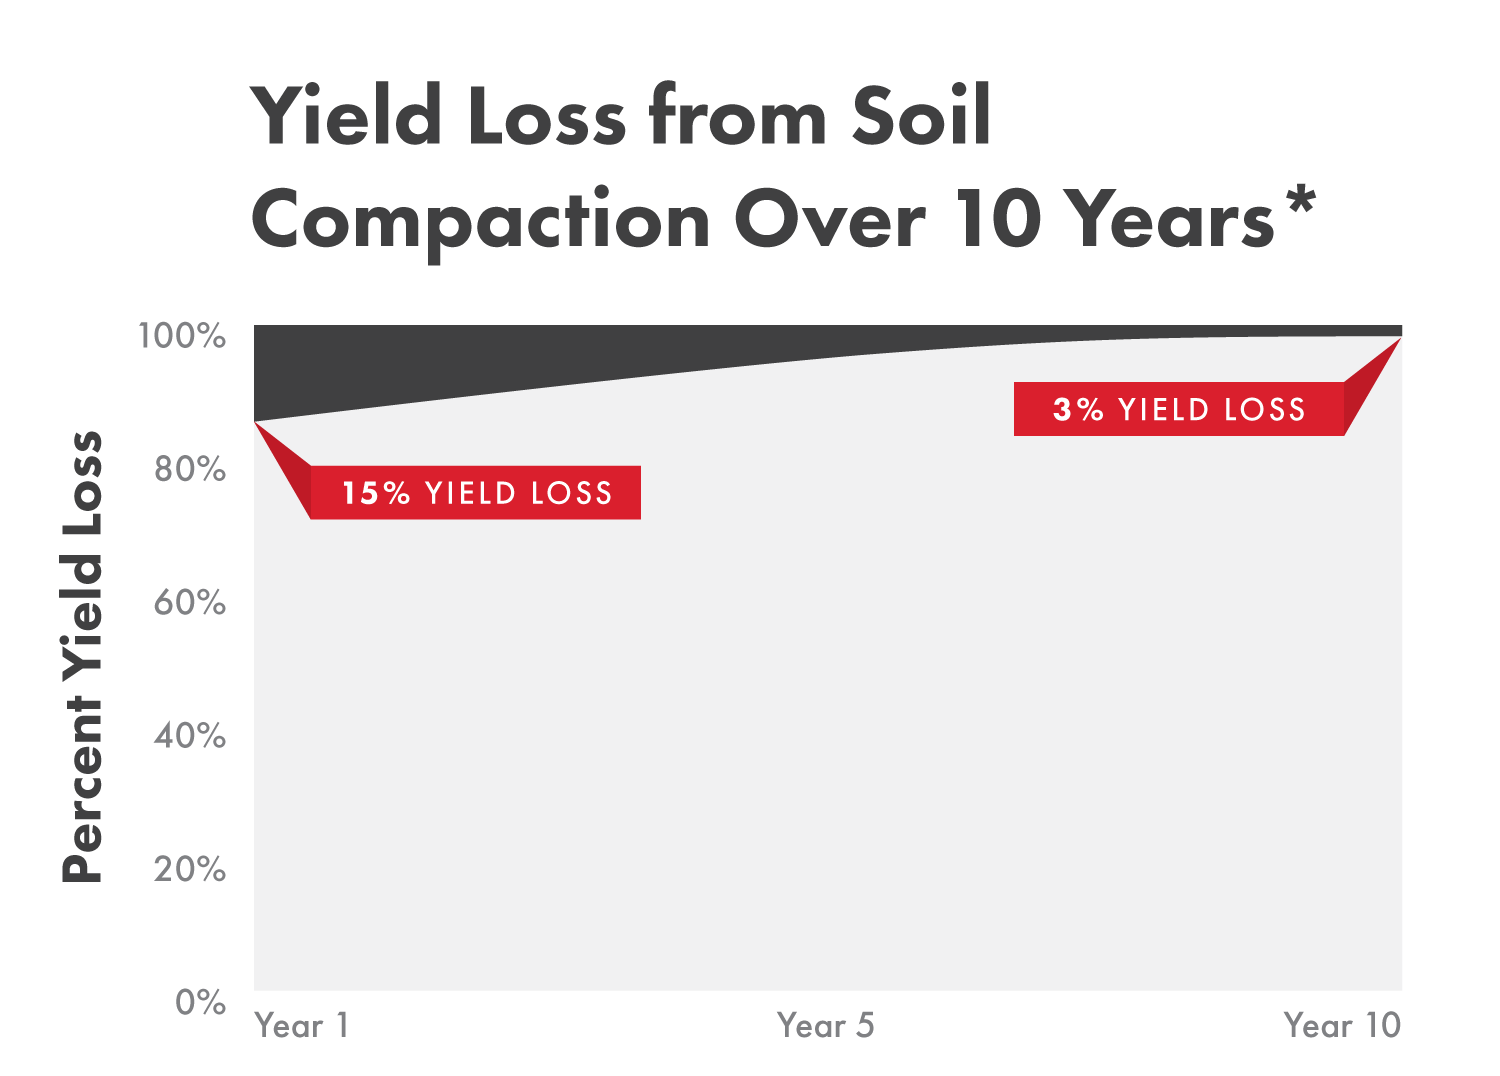 Chart Showing Yield Loss from Soil Compaction Over 10 Years